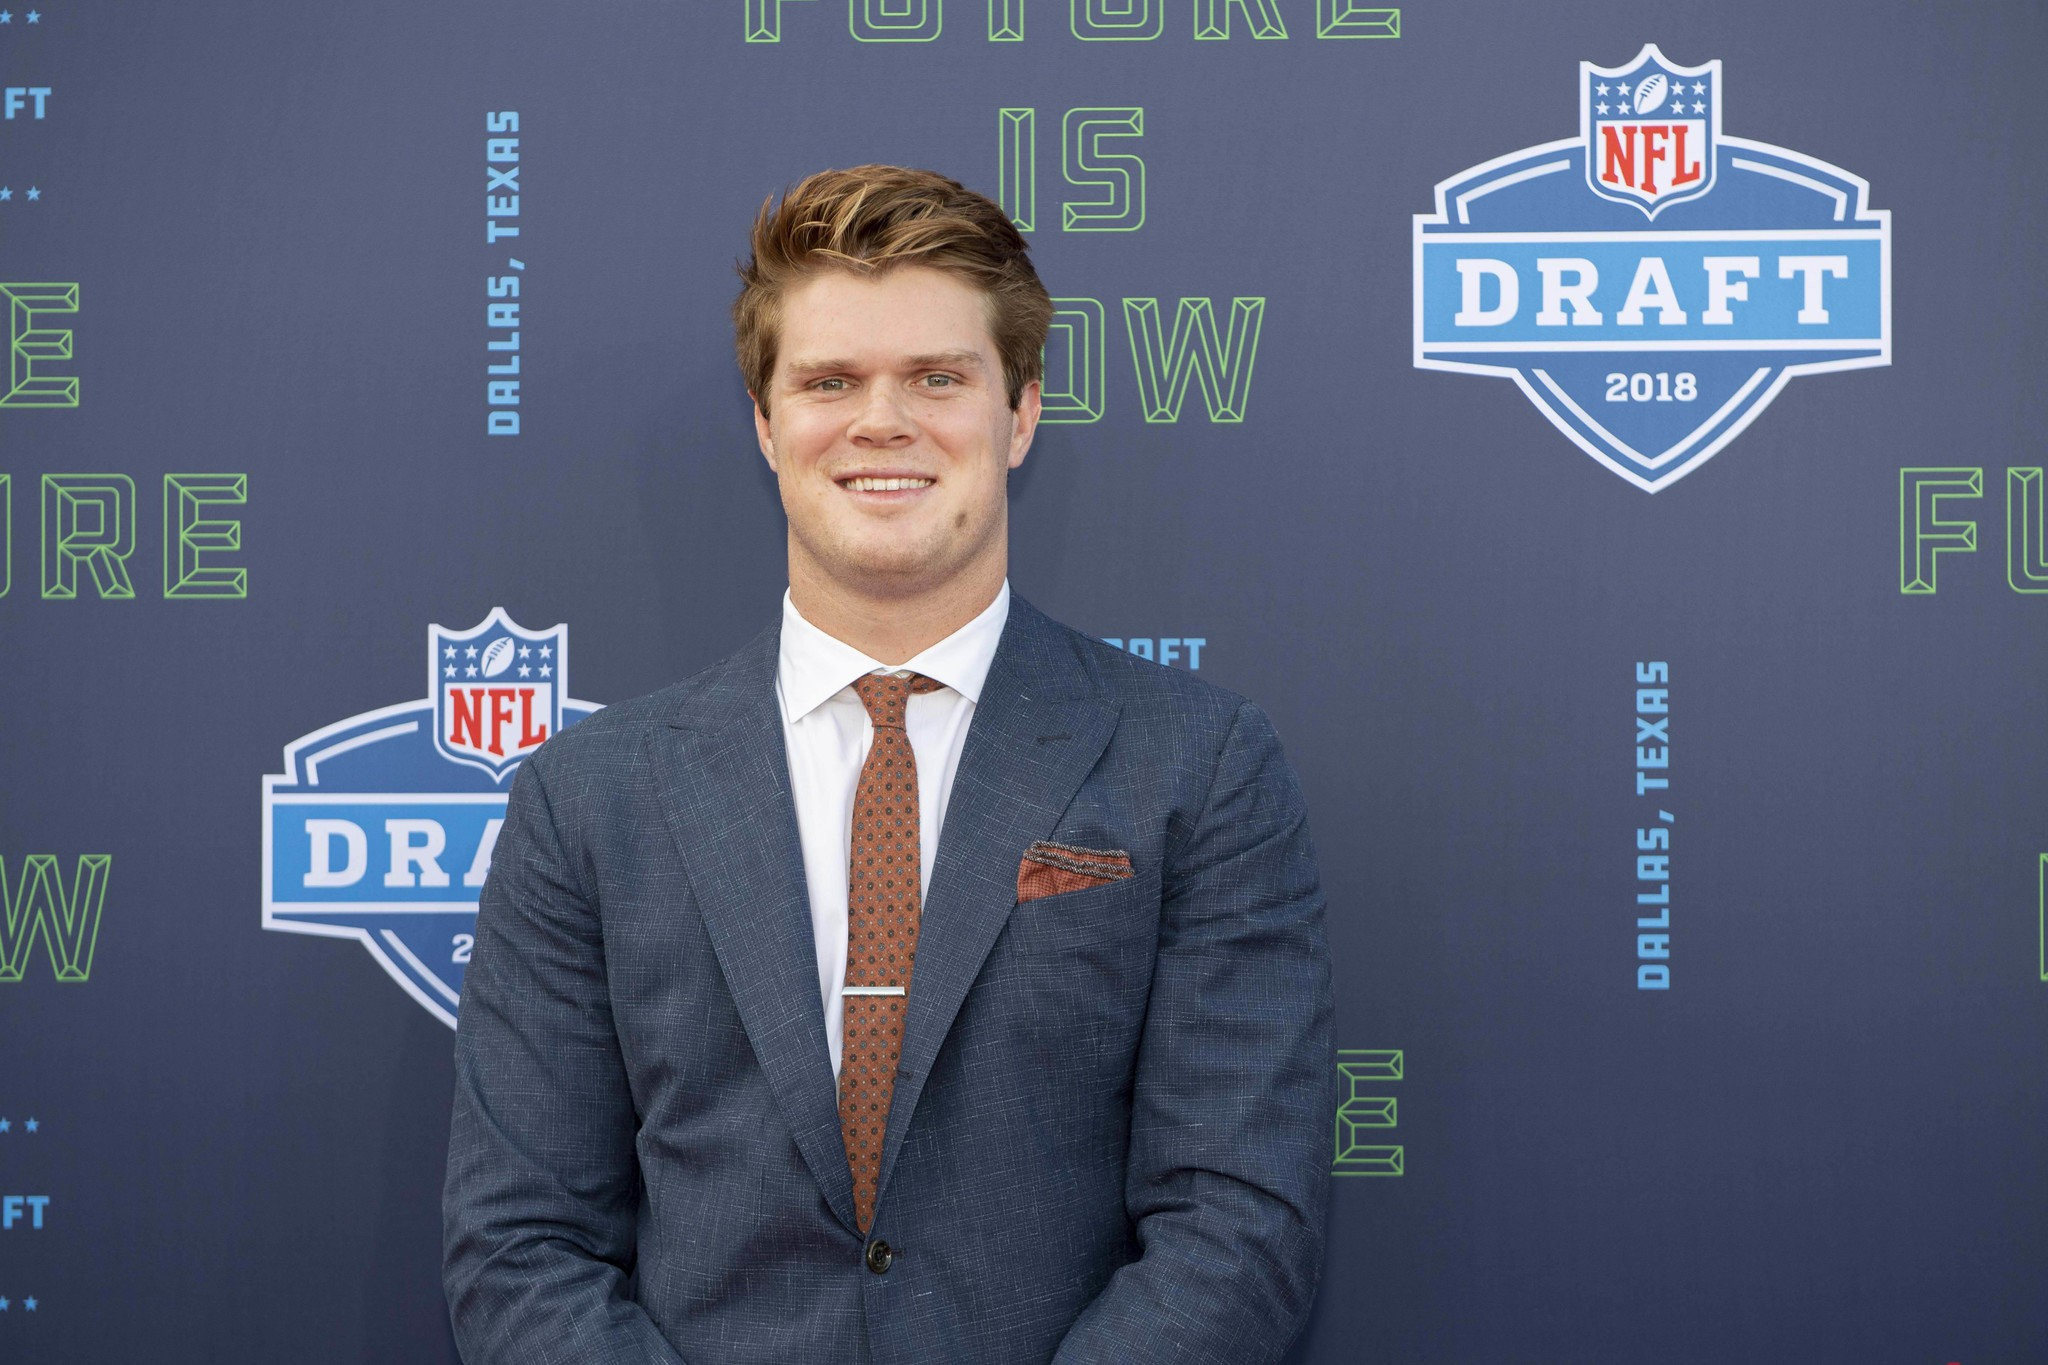 Nfl Draft 2018 Jets Pick Sam Darnold 6 Things To Know